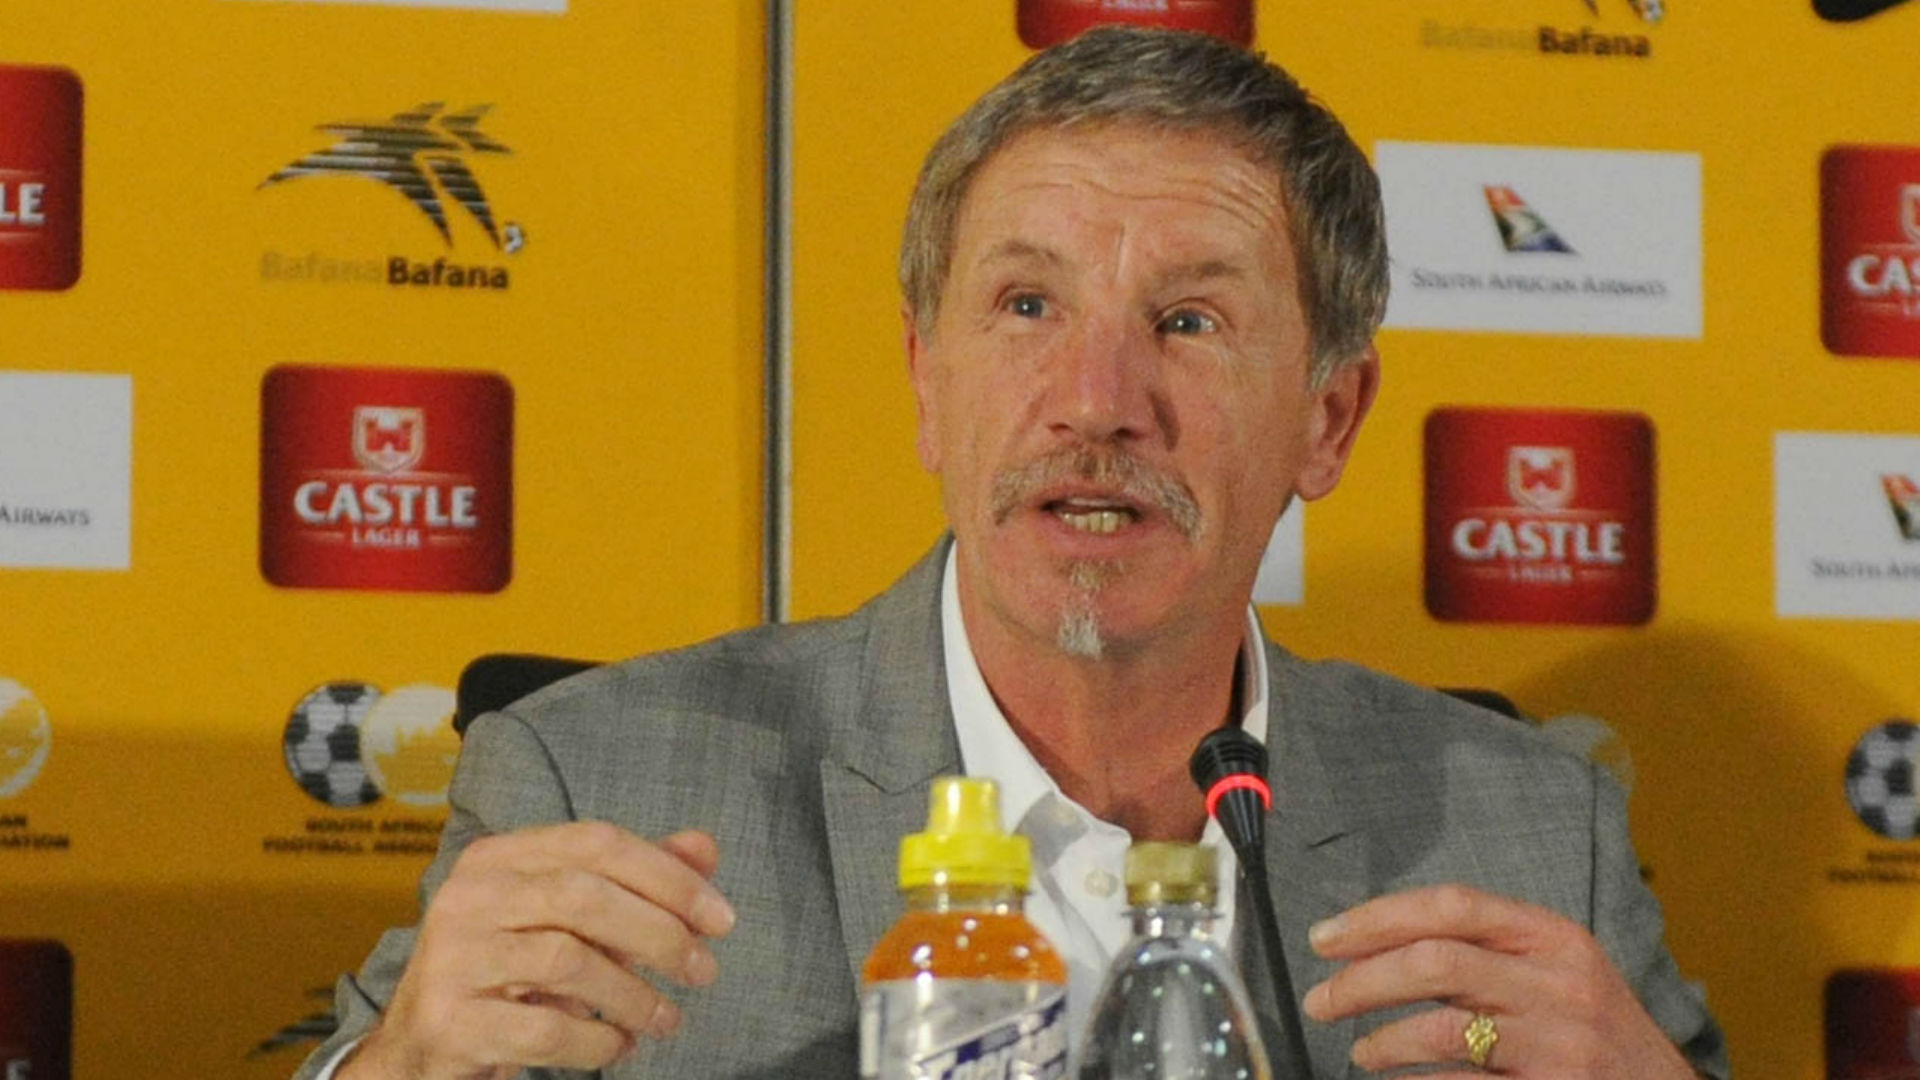 IN MEMES: Bafana Bafana's disappointing loss to Cape Verde